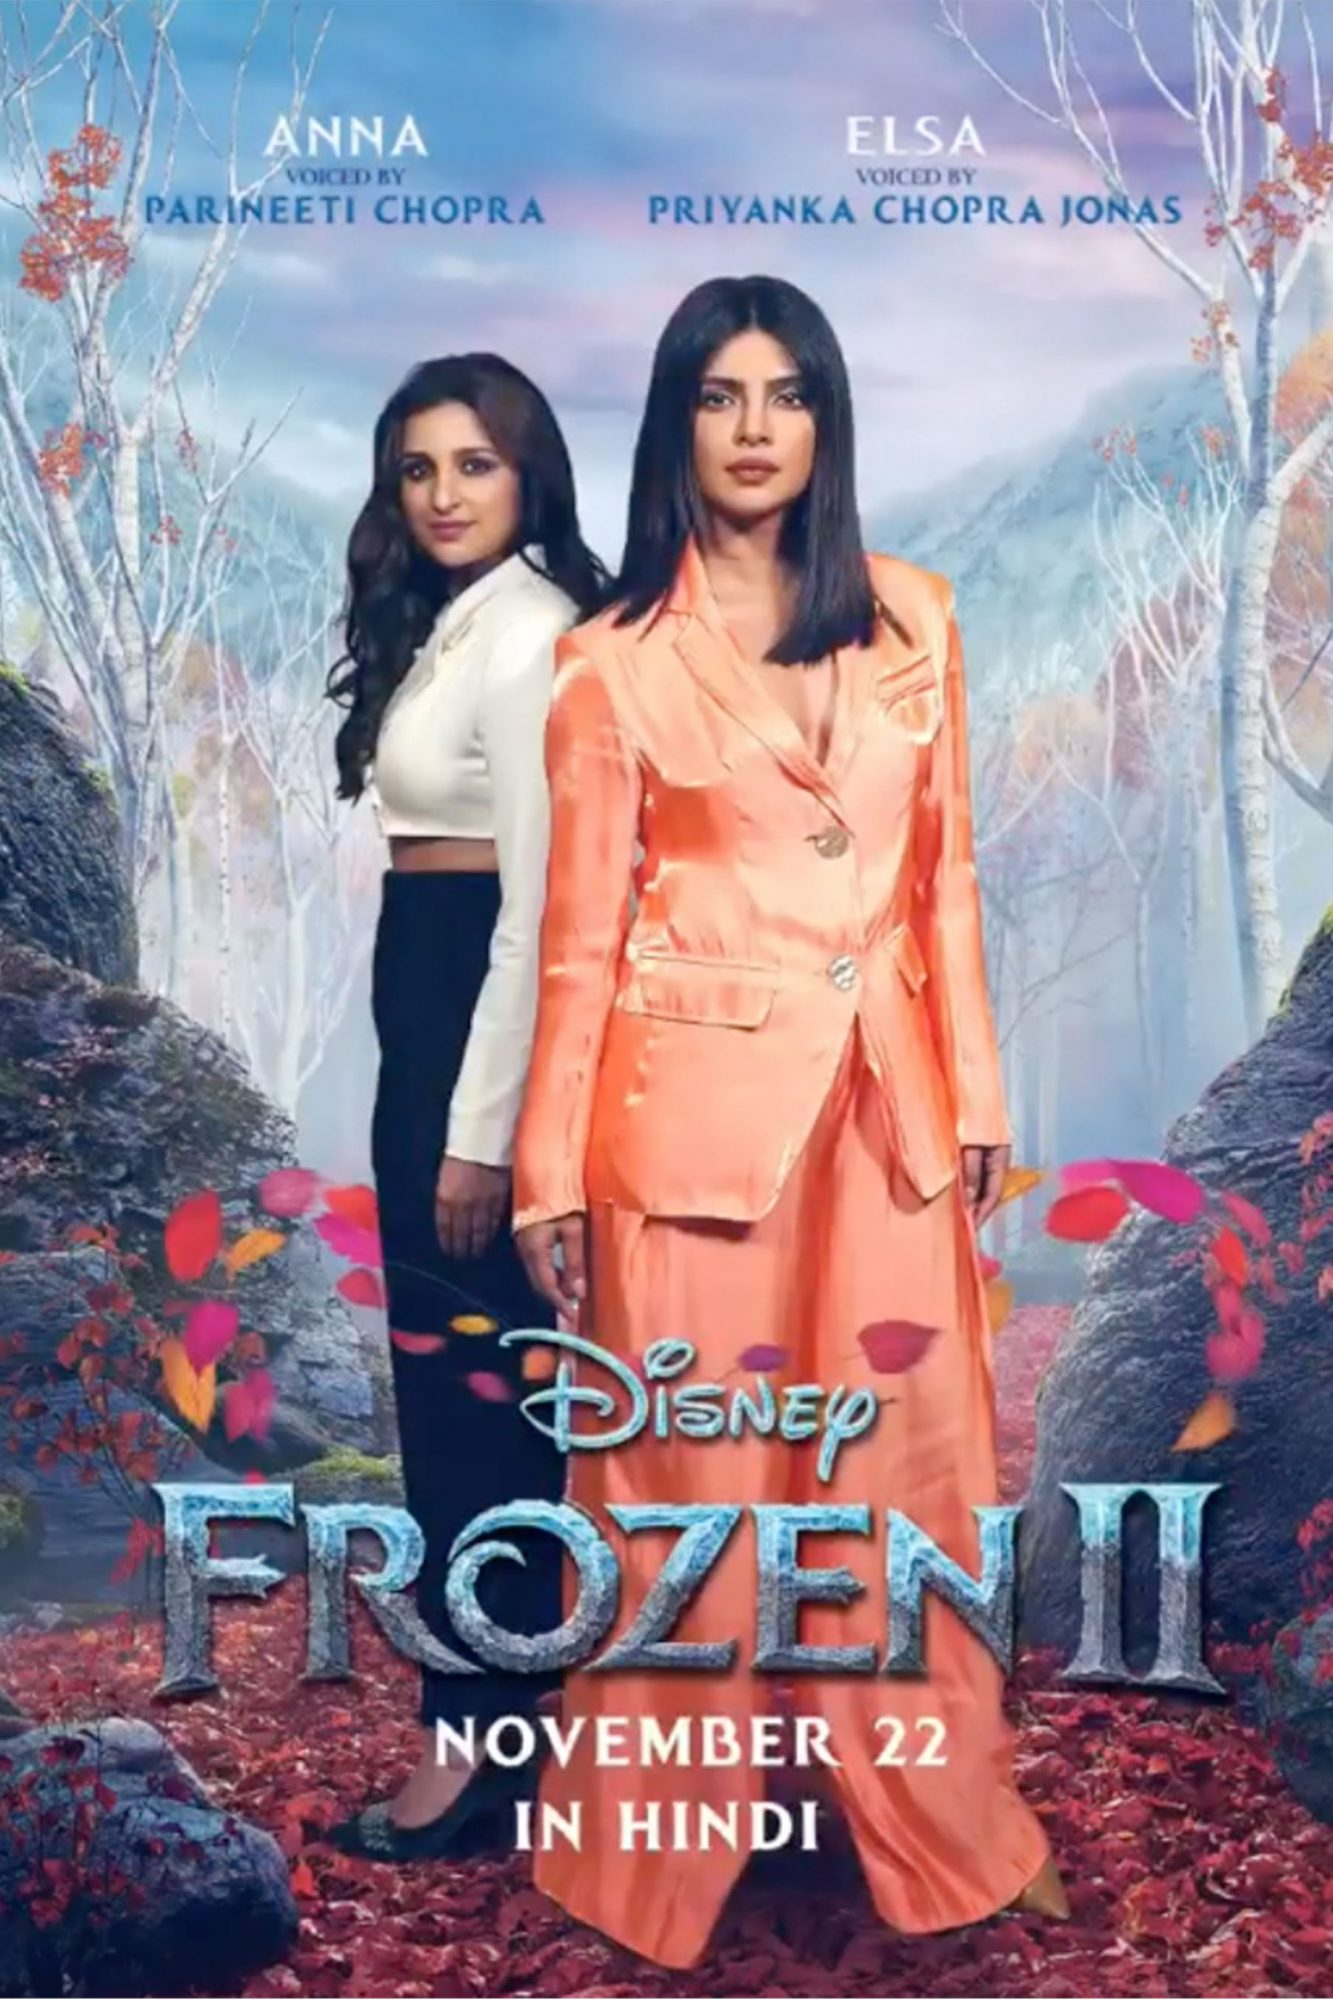 Priyanka Chopra Jonas in Frozen 2 Hindi